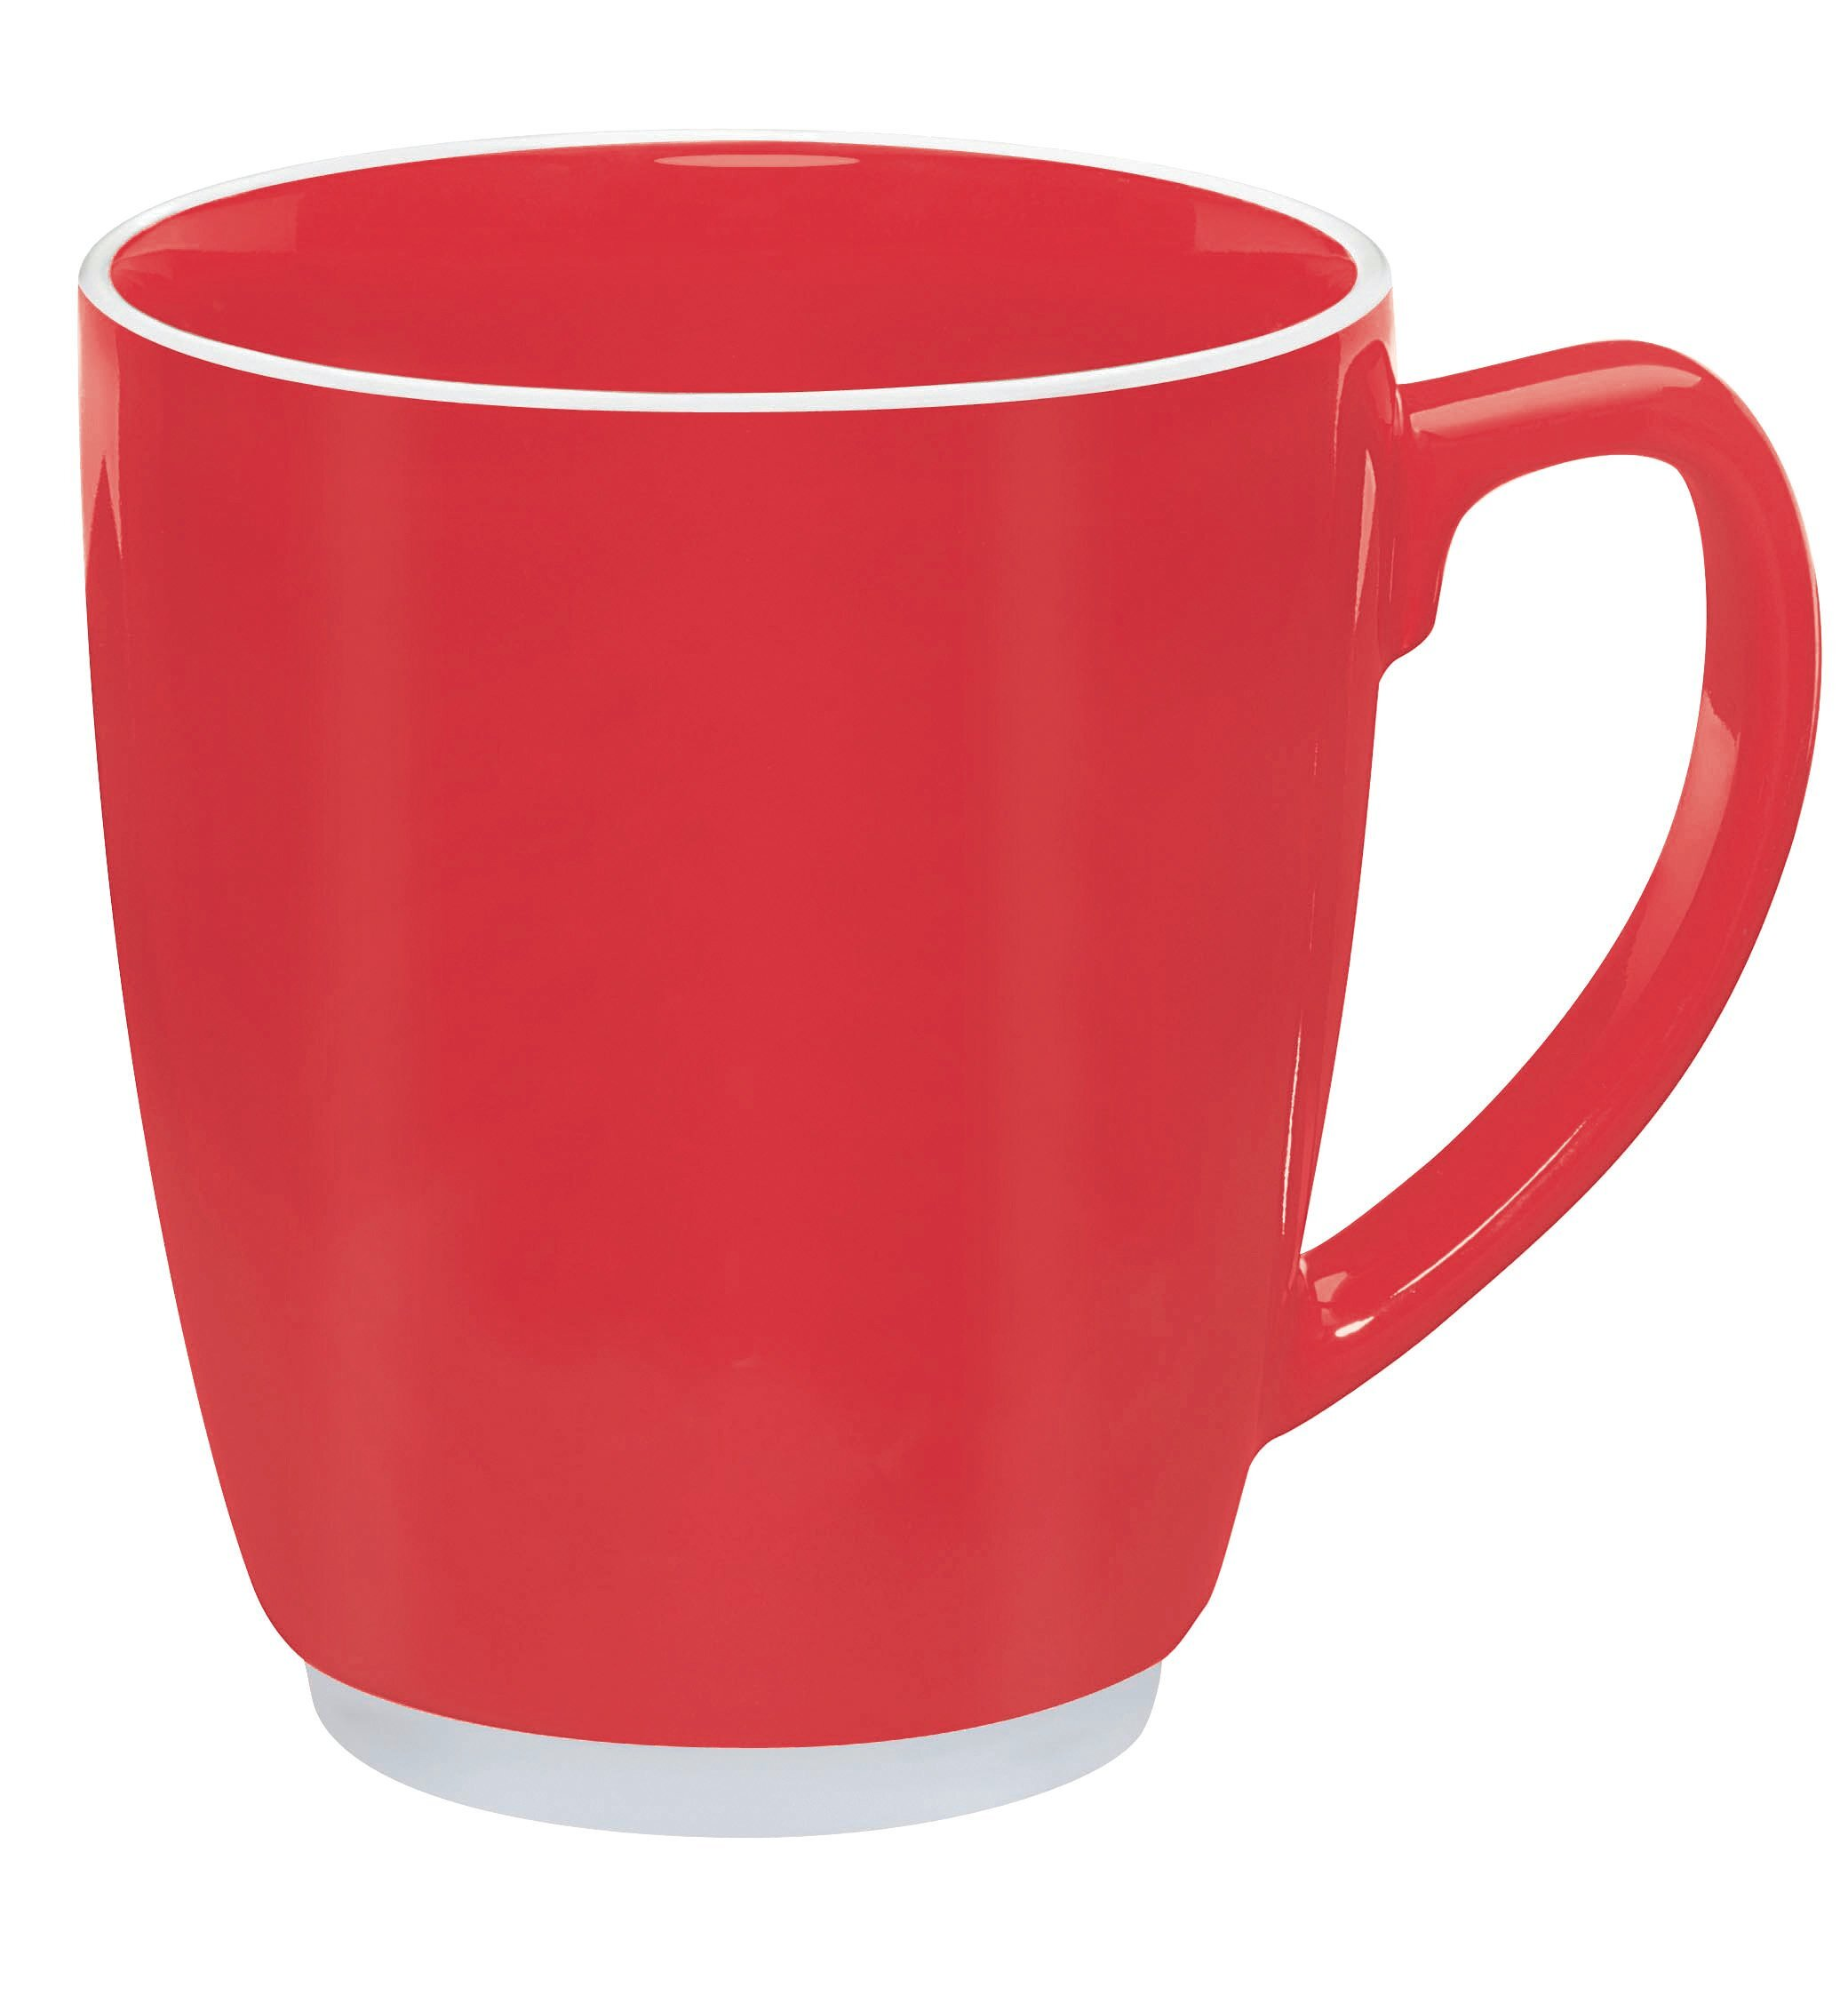 Big Mack Ceramic Mug, 20oz. - Red & Orange